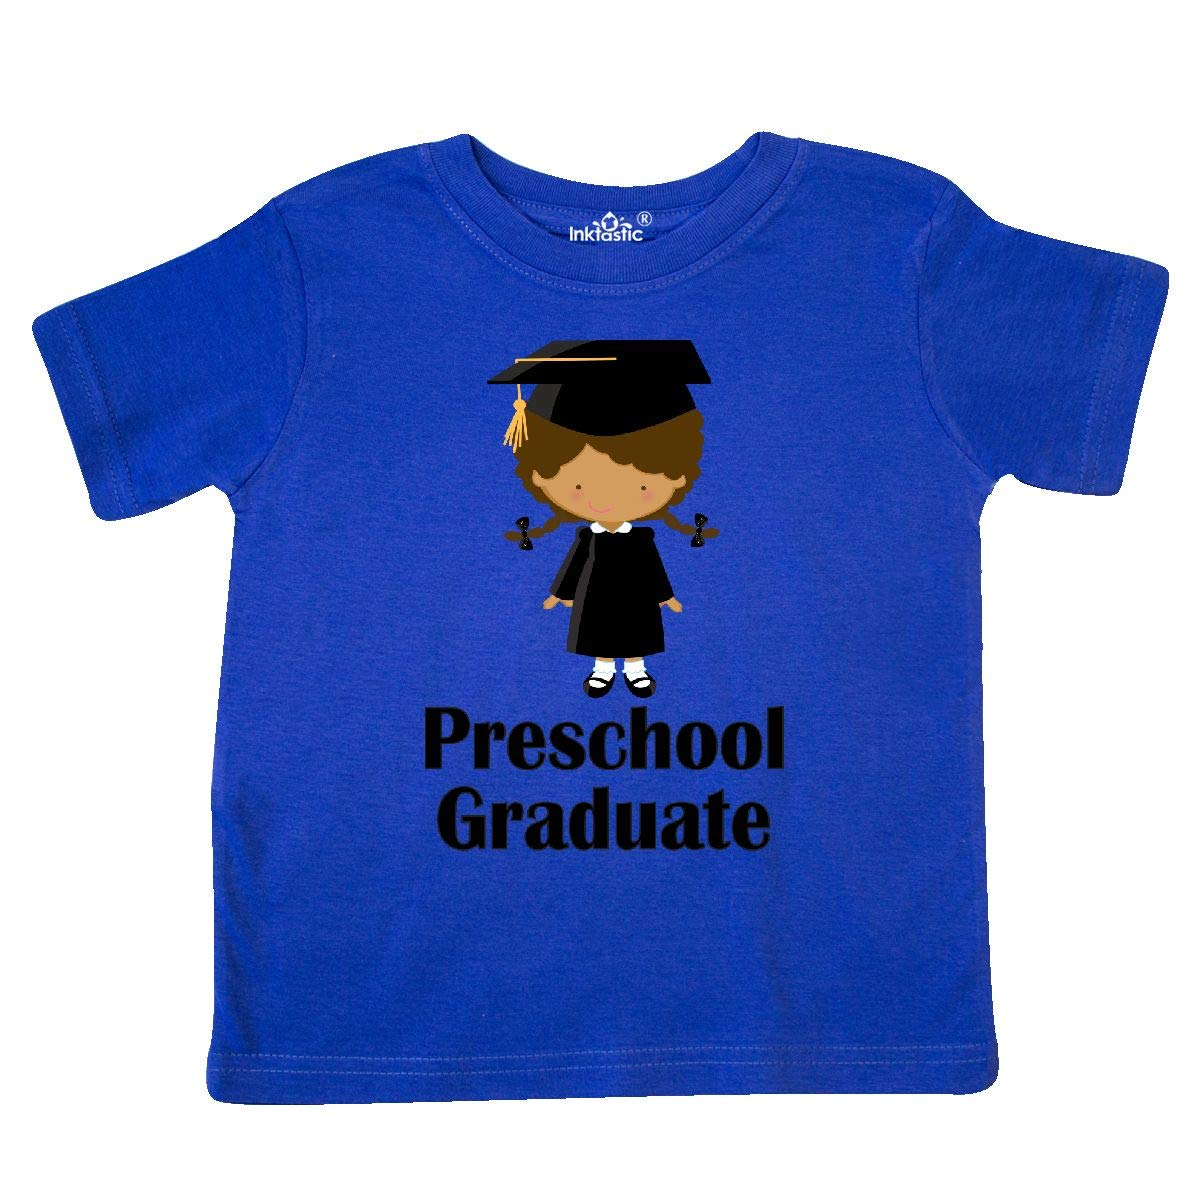 inktastic Preschool Graduate Girl Ethnic Toddler T-Shirt